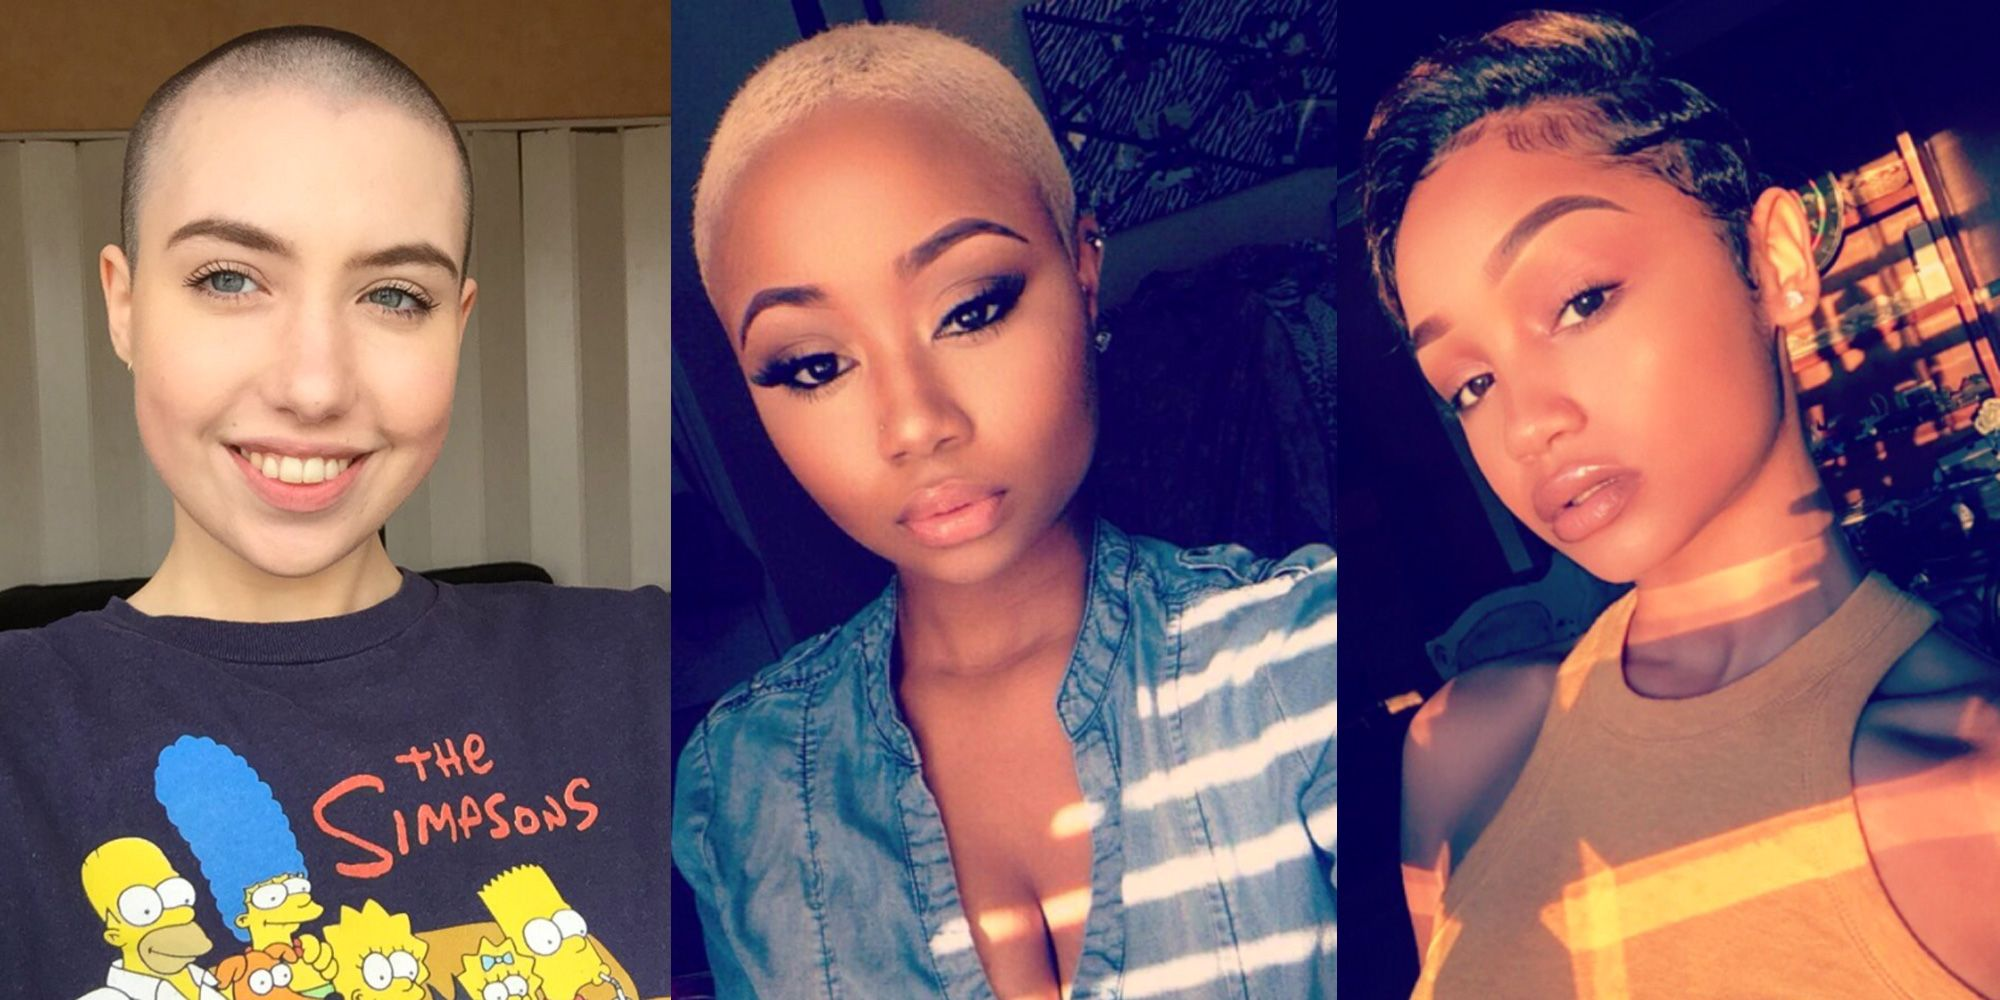 Women On Twitter Are Showing Off Their Beautiful Bald Haircuts For The Most  Powerful Reason